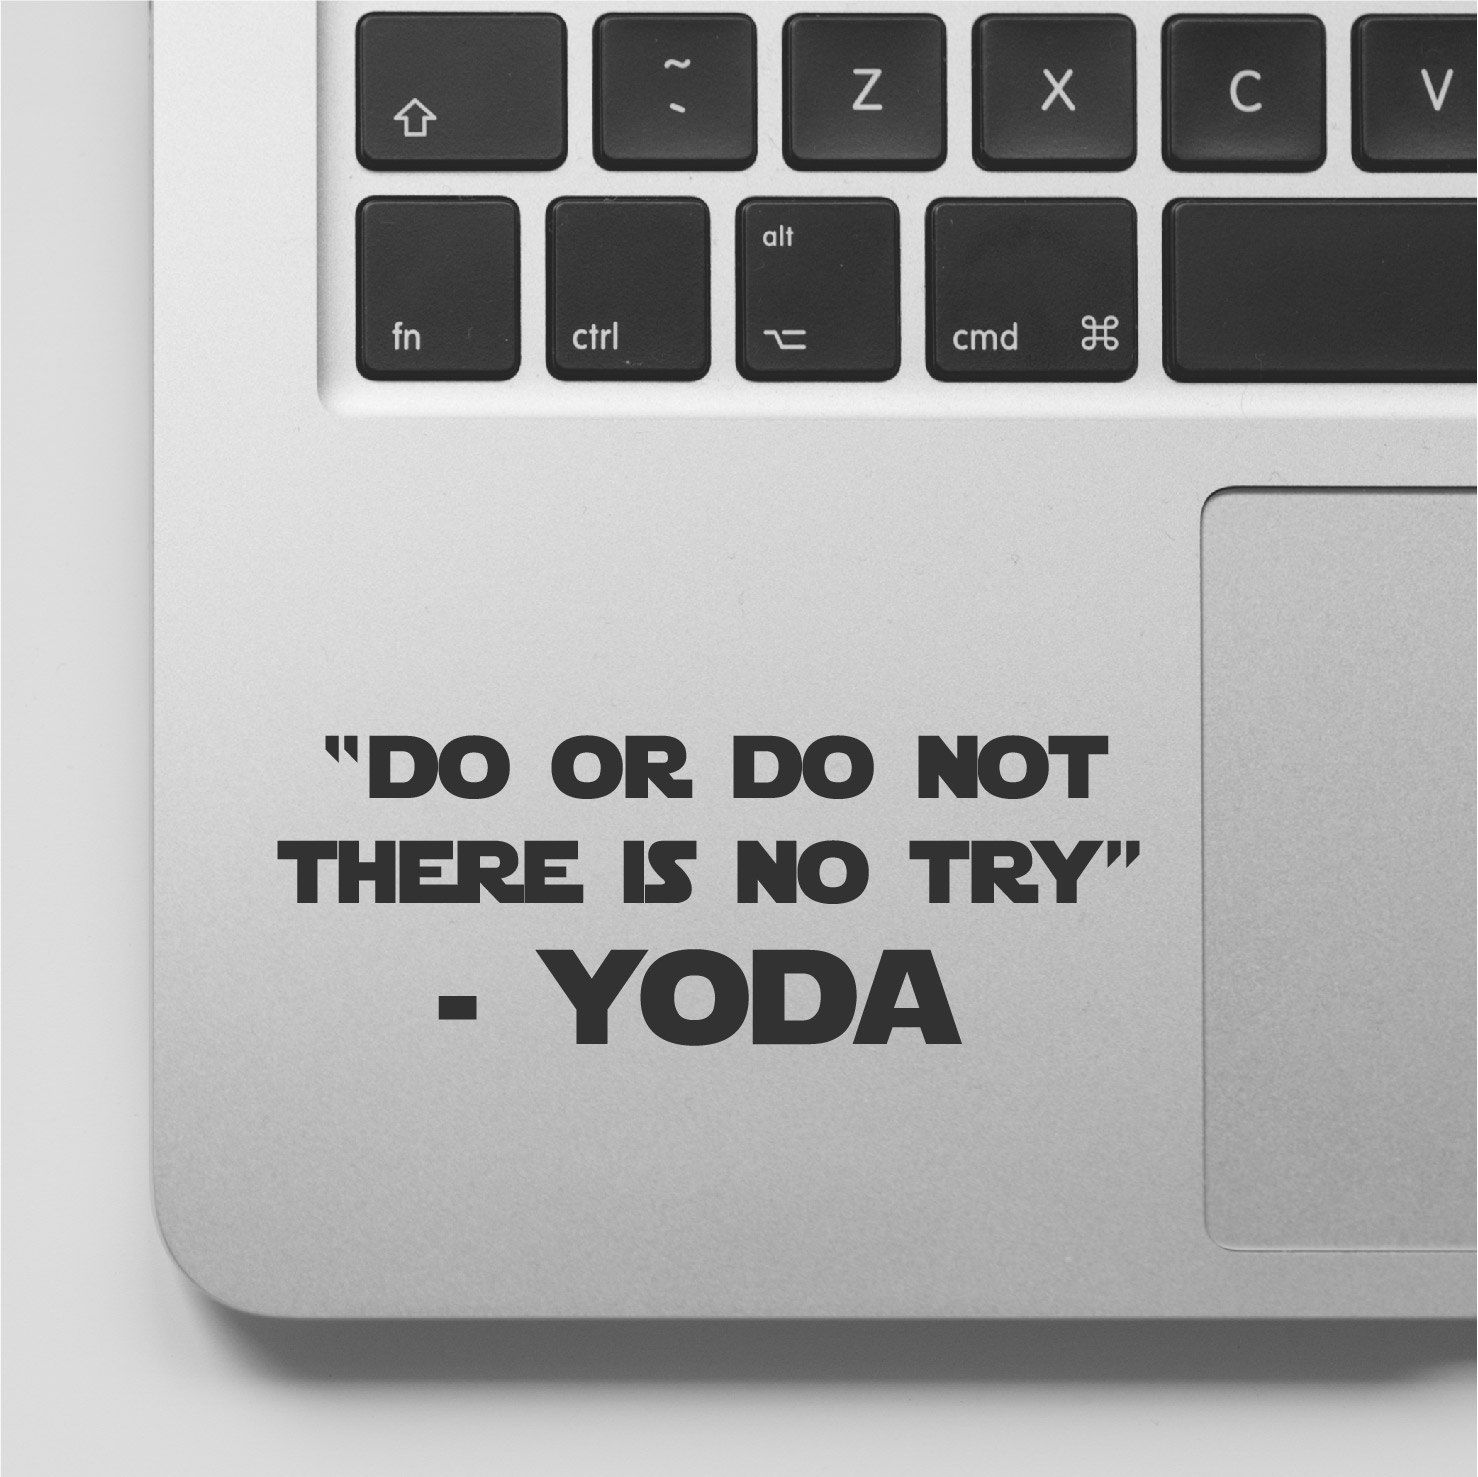 Starwars Quote Macbook Decal Do or Do Not There is no